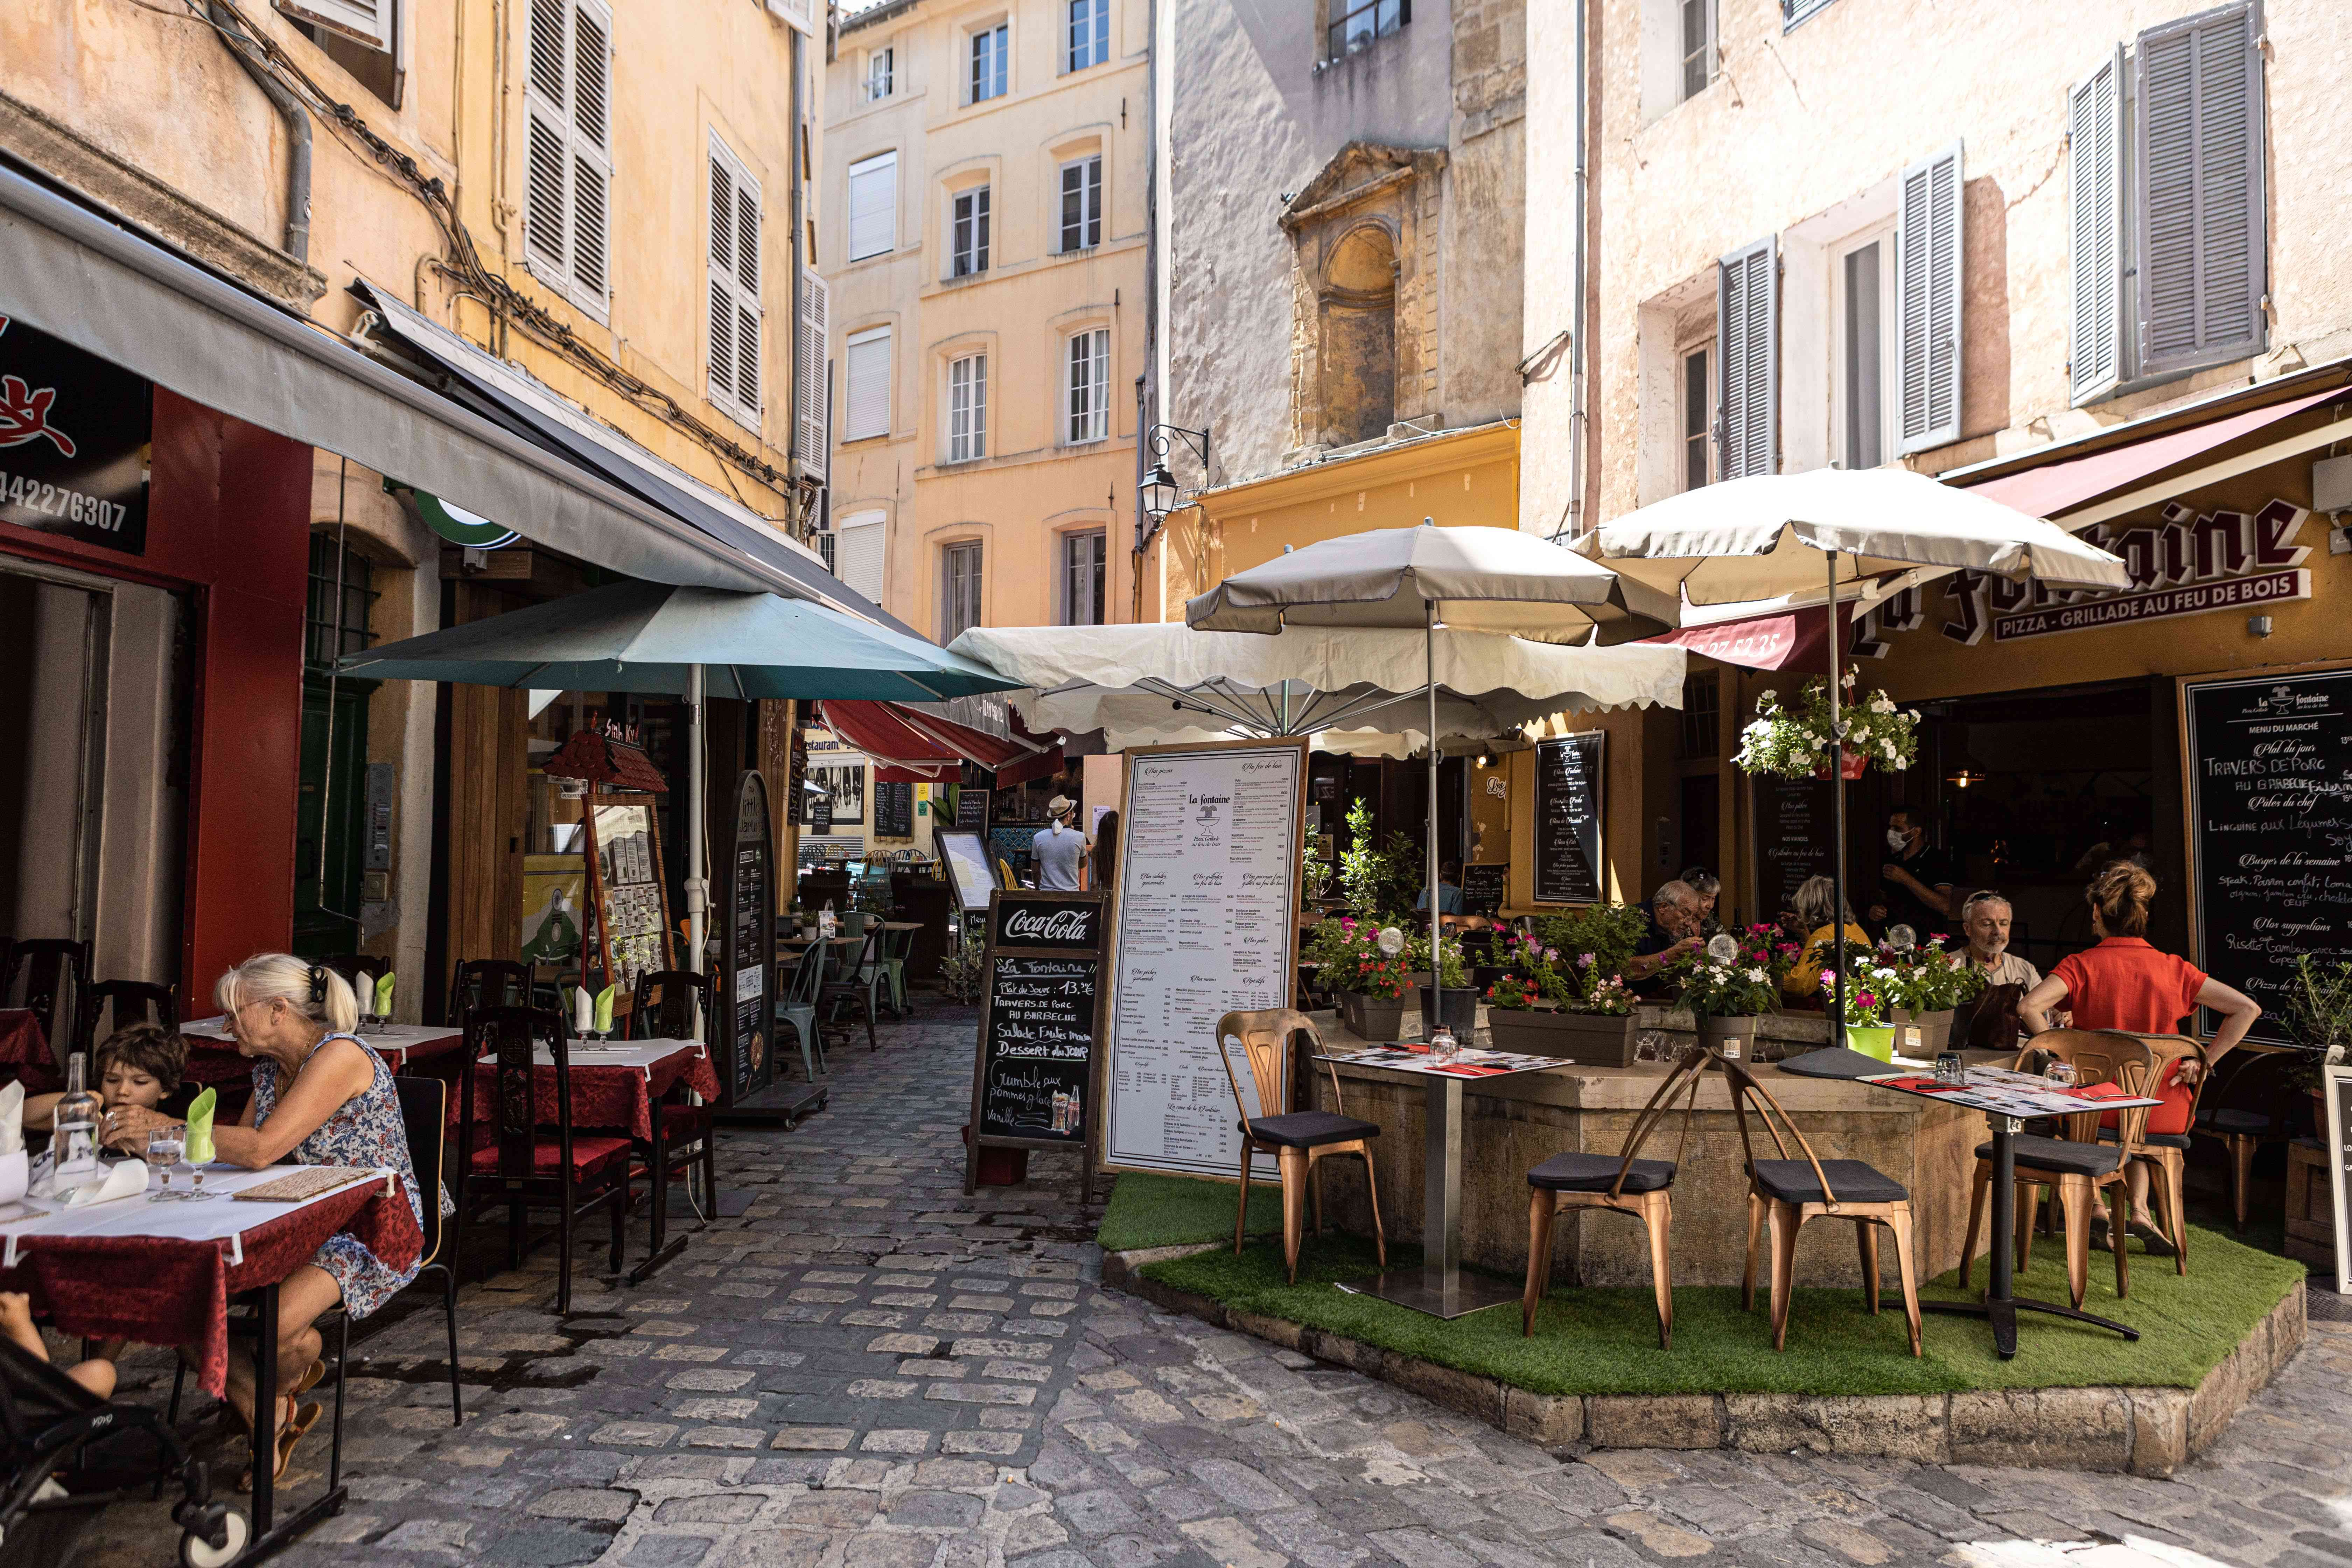 Cafe lined street in Aix-en-Provence